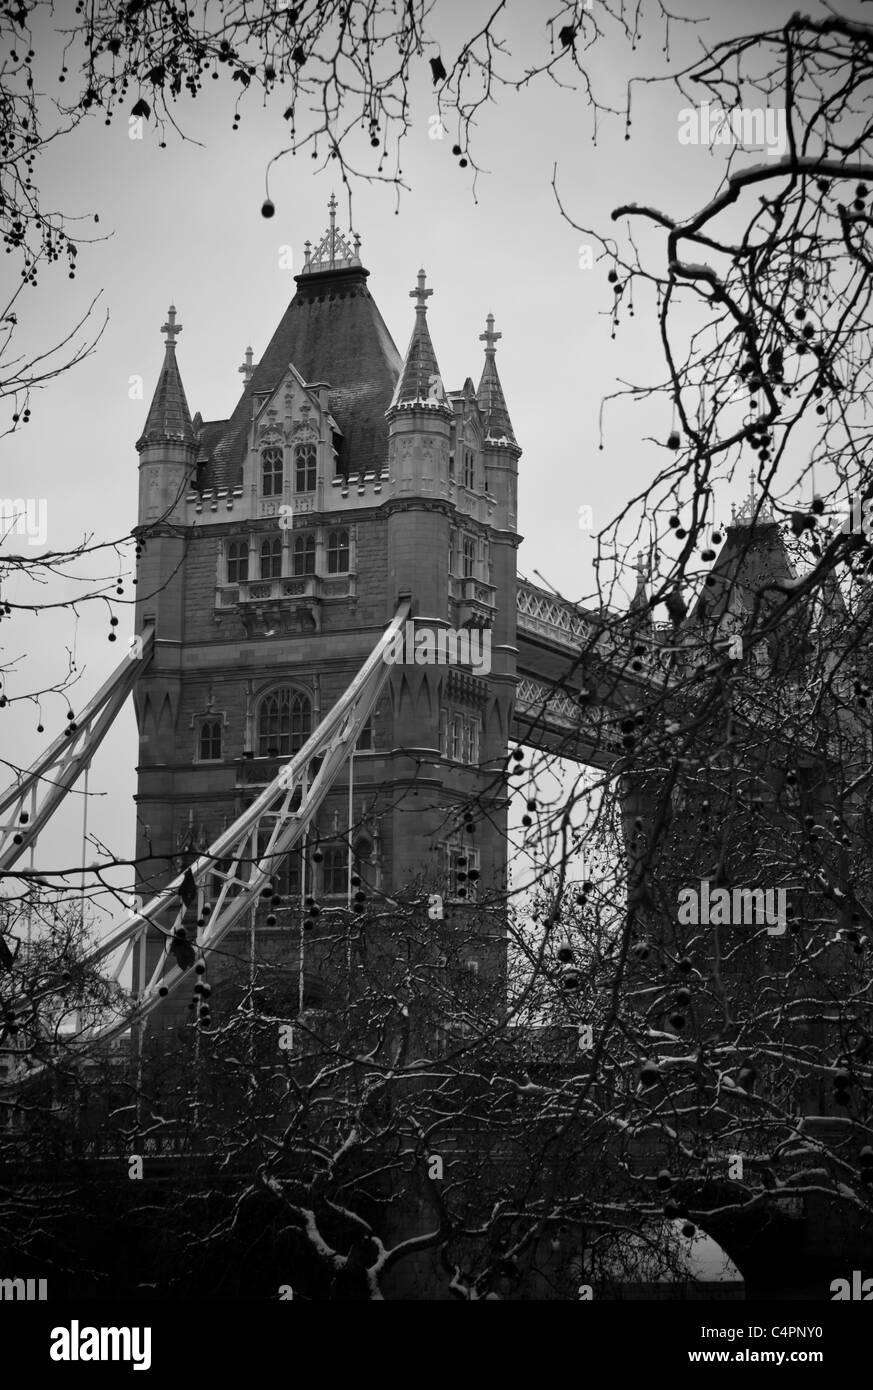 Tower Bridge in London through the trees - Stock Image